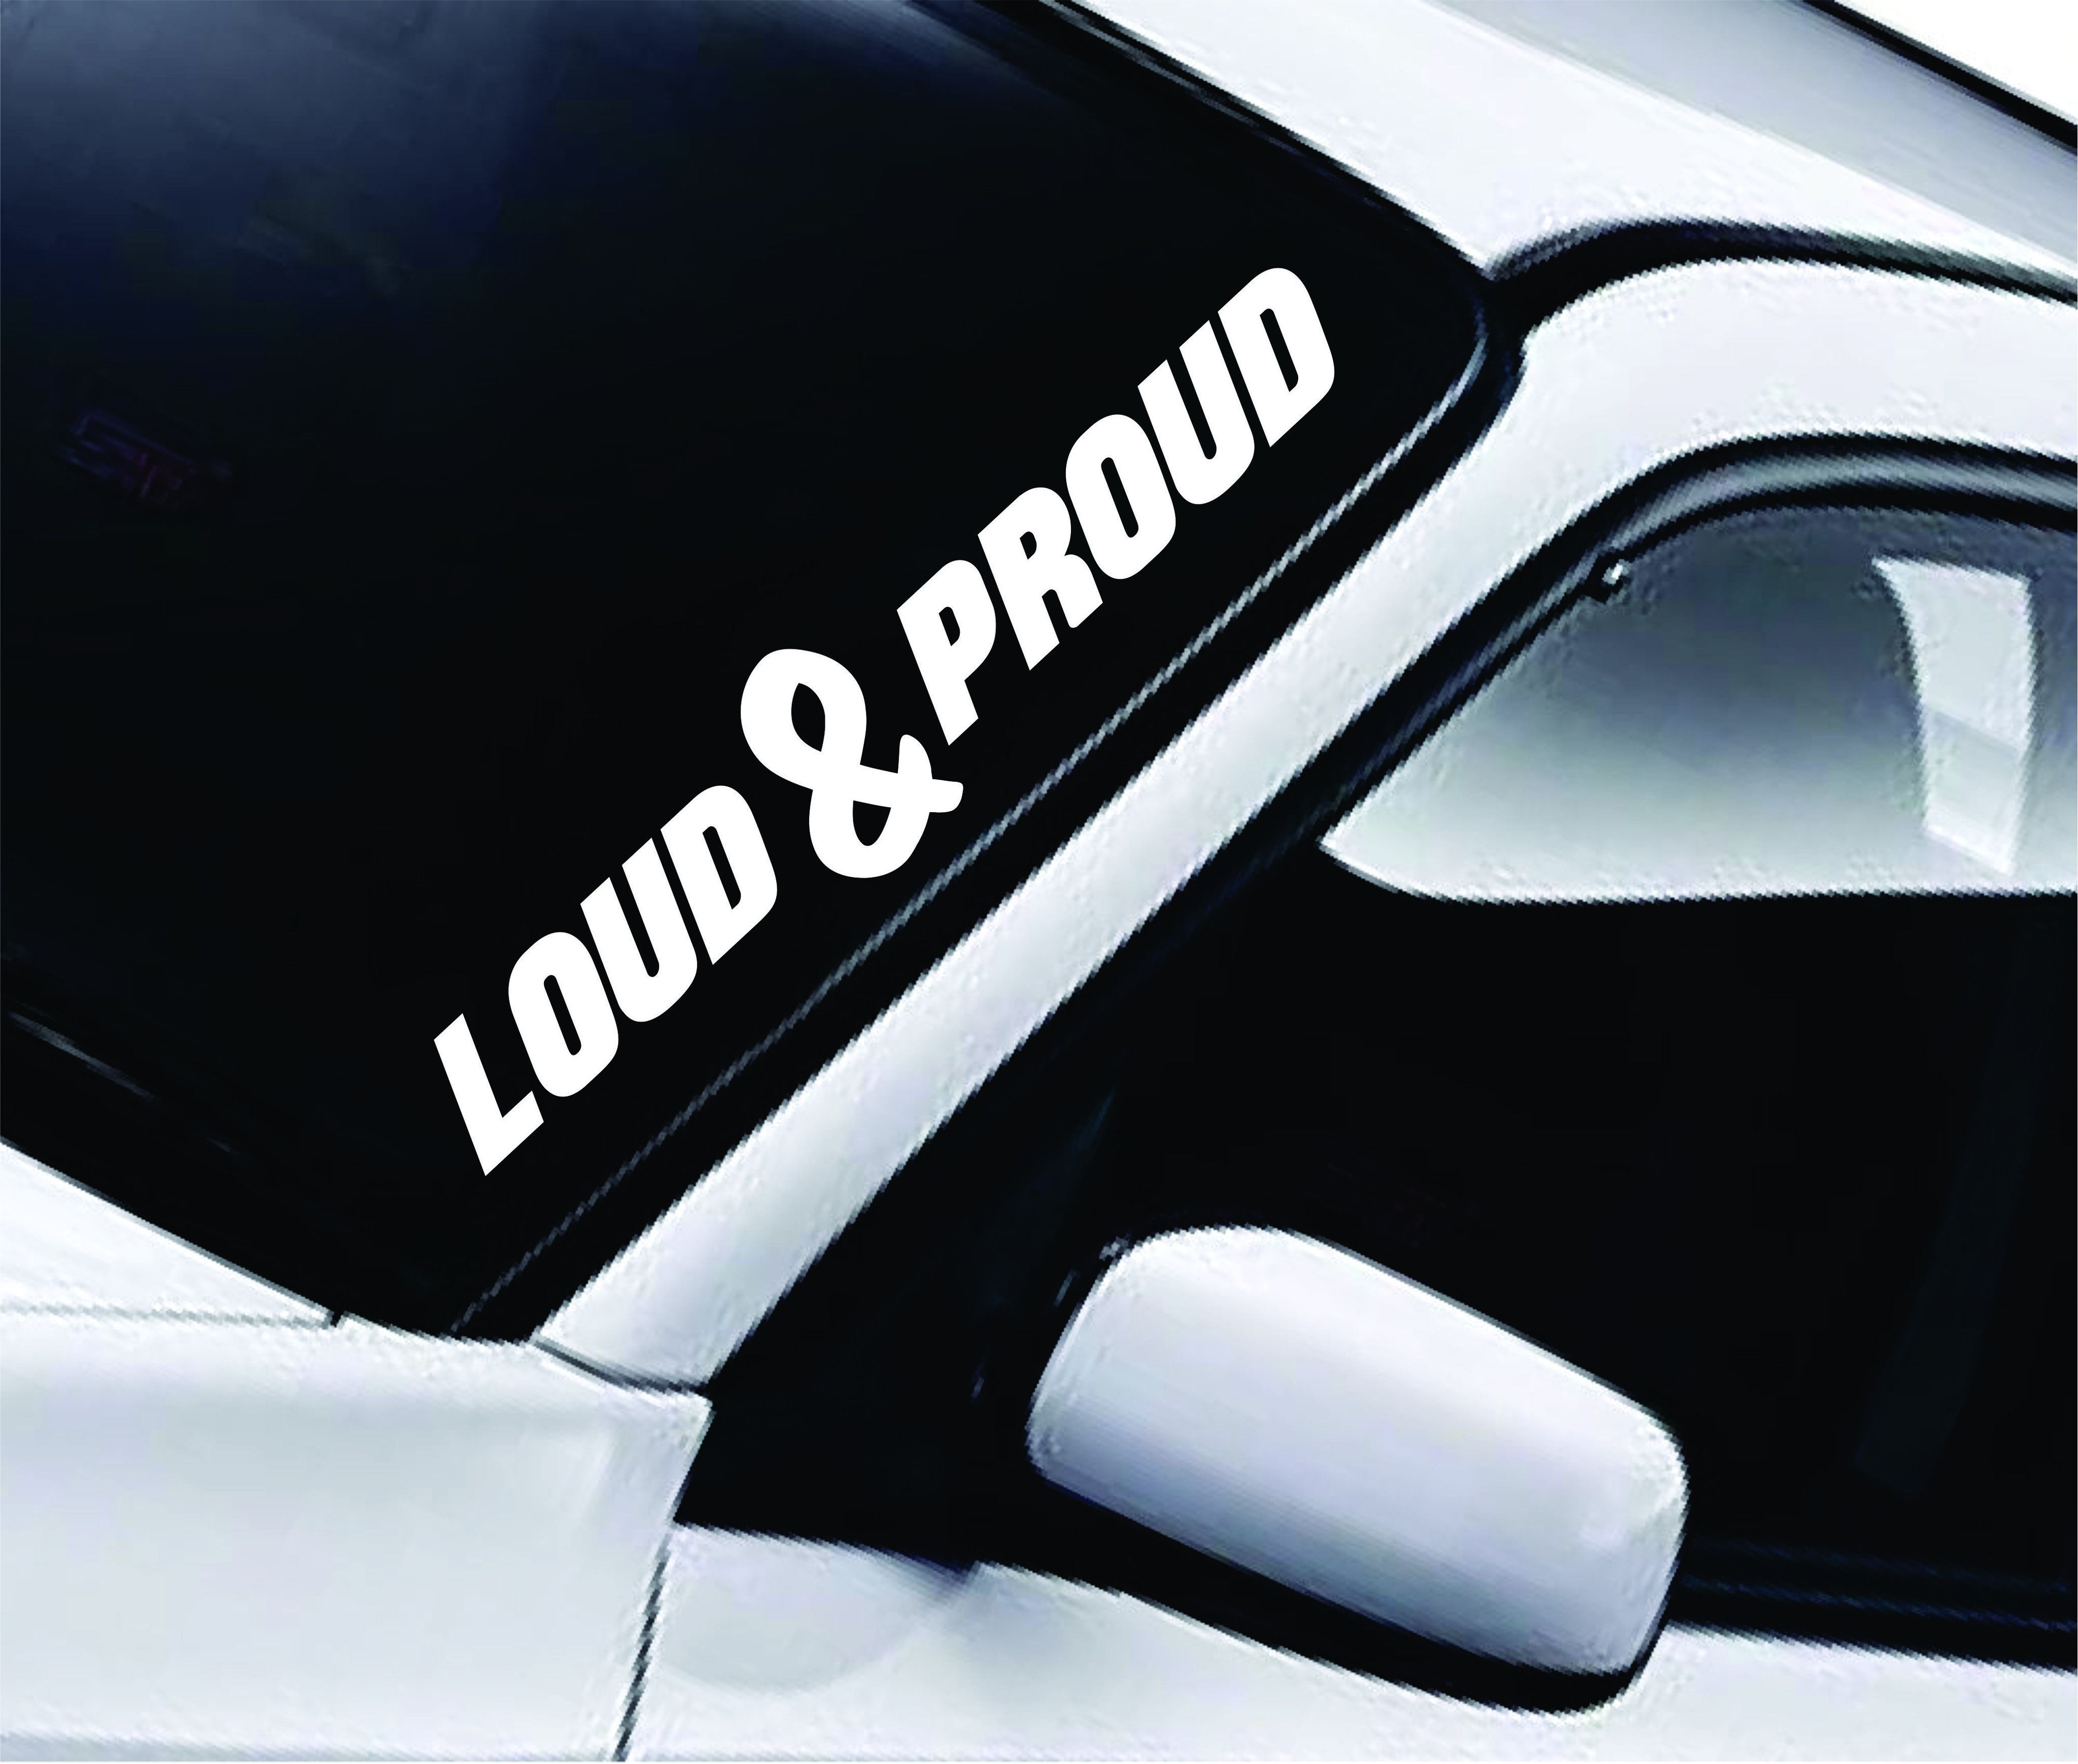 ... Large Size of Stickers:vinyl Stickers For Cars Together With Vinyl  Stickers At Hobby Lobby ...